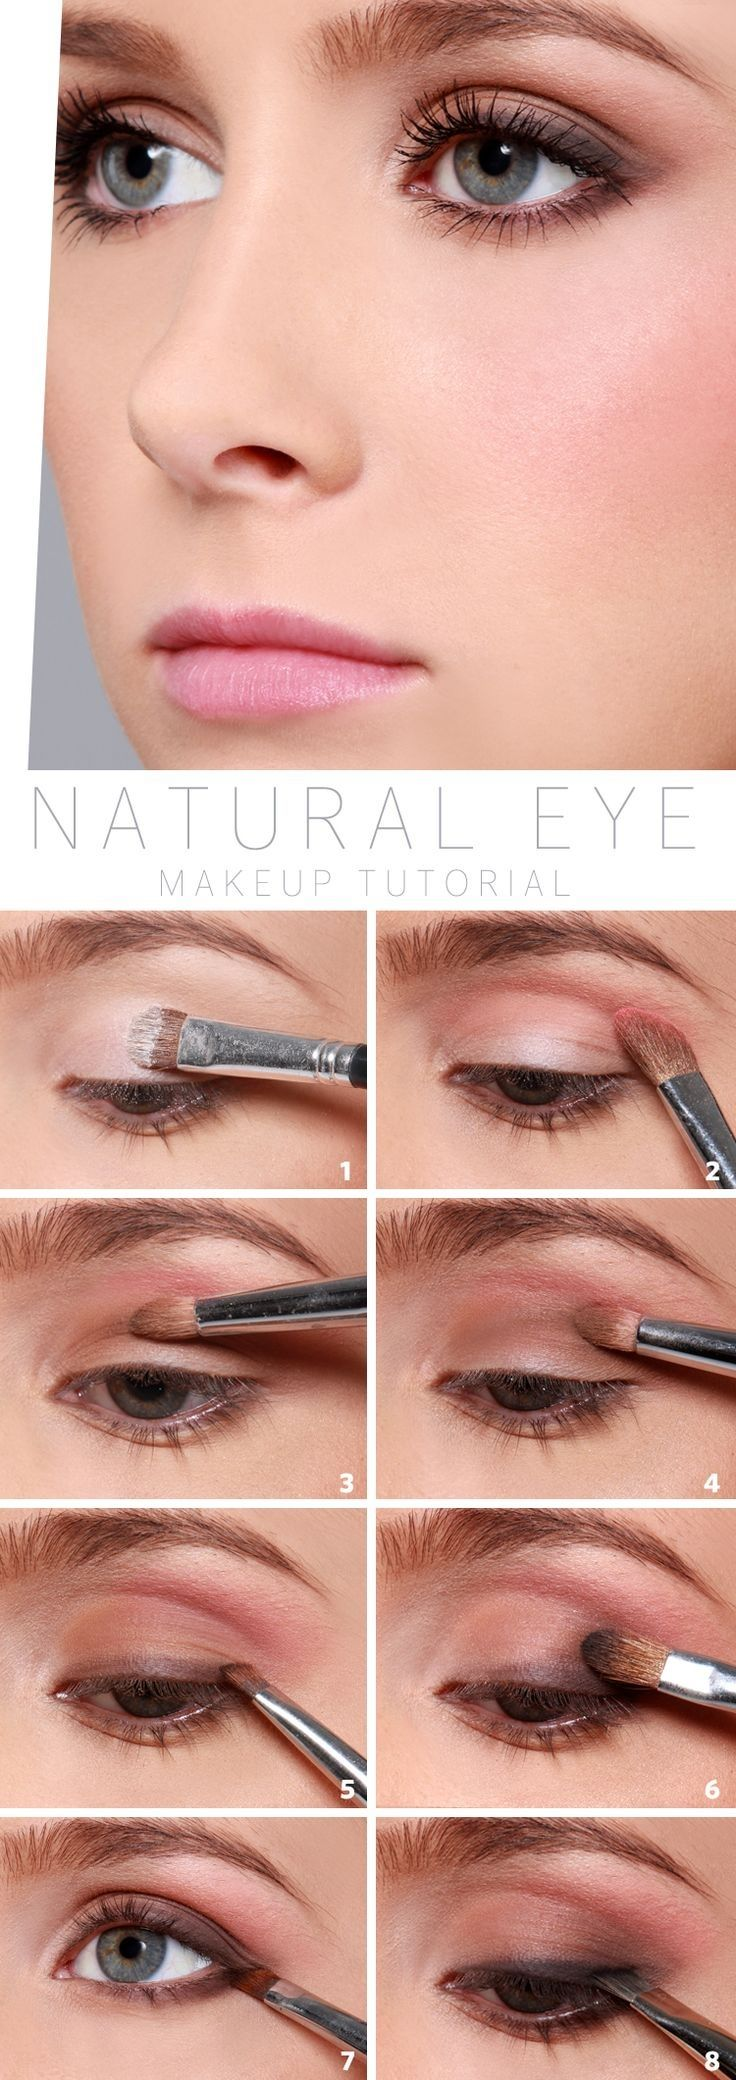 How to Do Natural Eyes | Work Makeup Tips by Makeup Tutorials at | Makeup Tutorials http://makeuptutorials.com/10-minute-makeup-tutorials-for-work